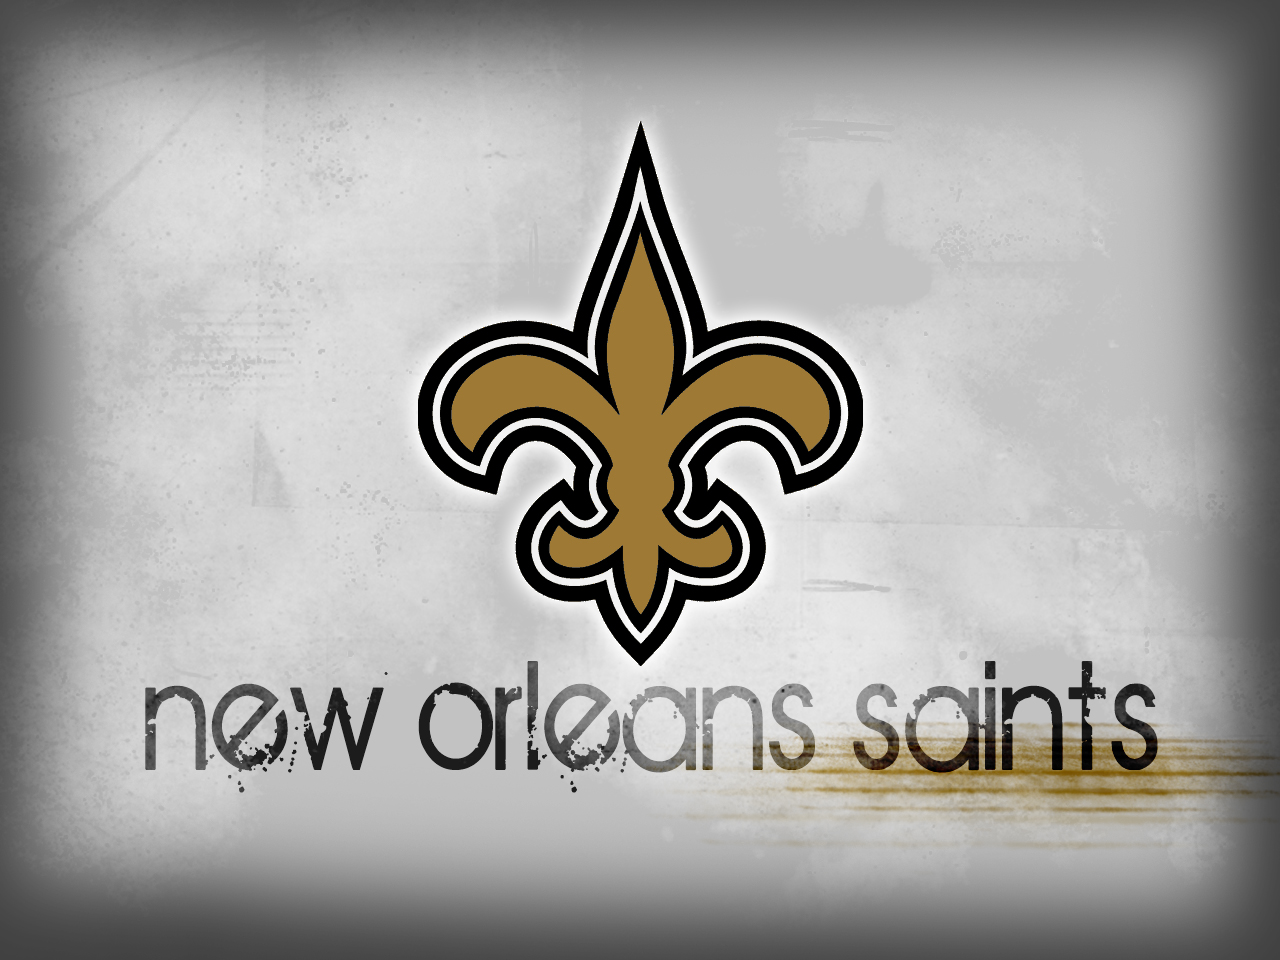 Wallpaper of the day New Orleans Saints New Orleans Saints 1280x960